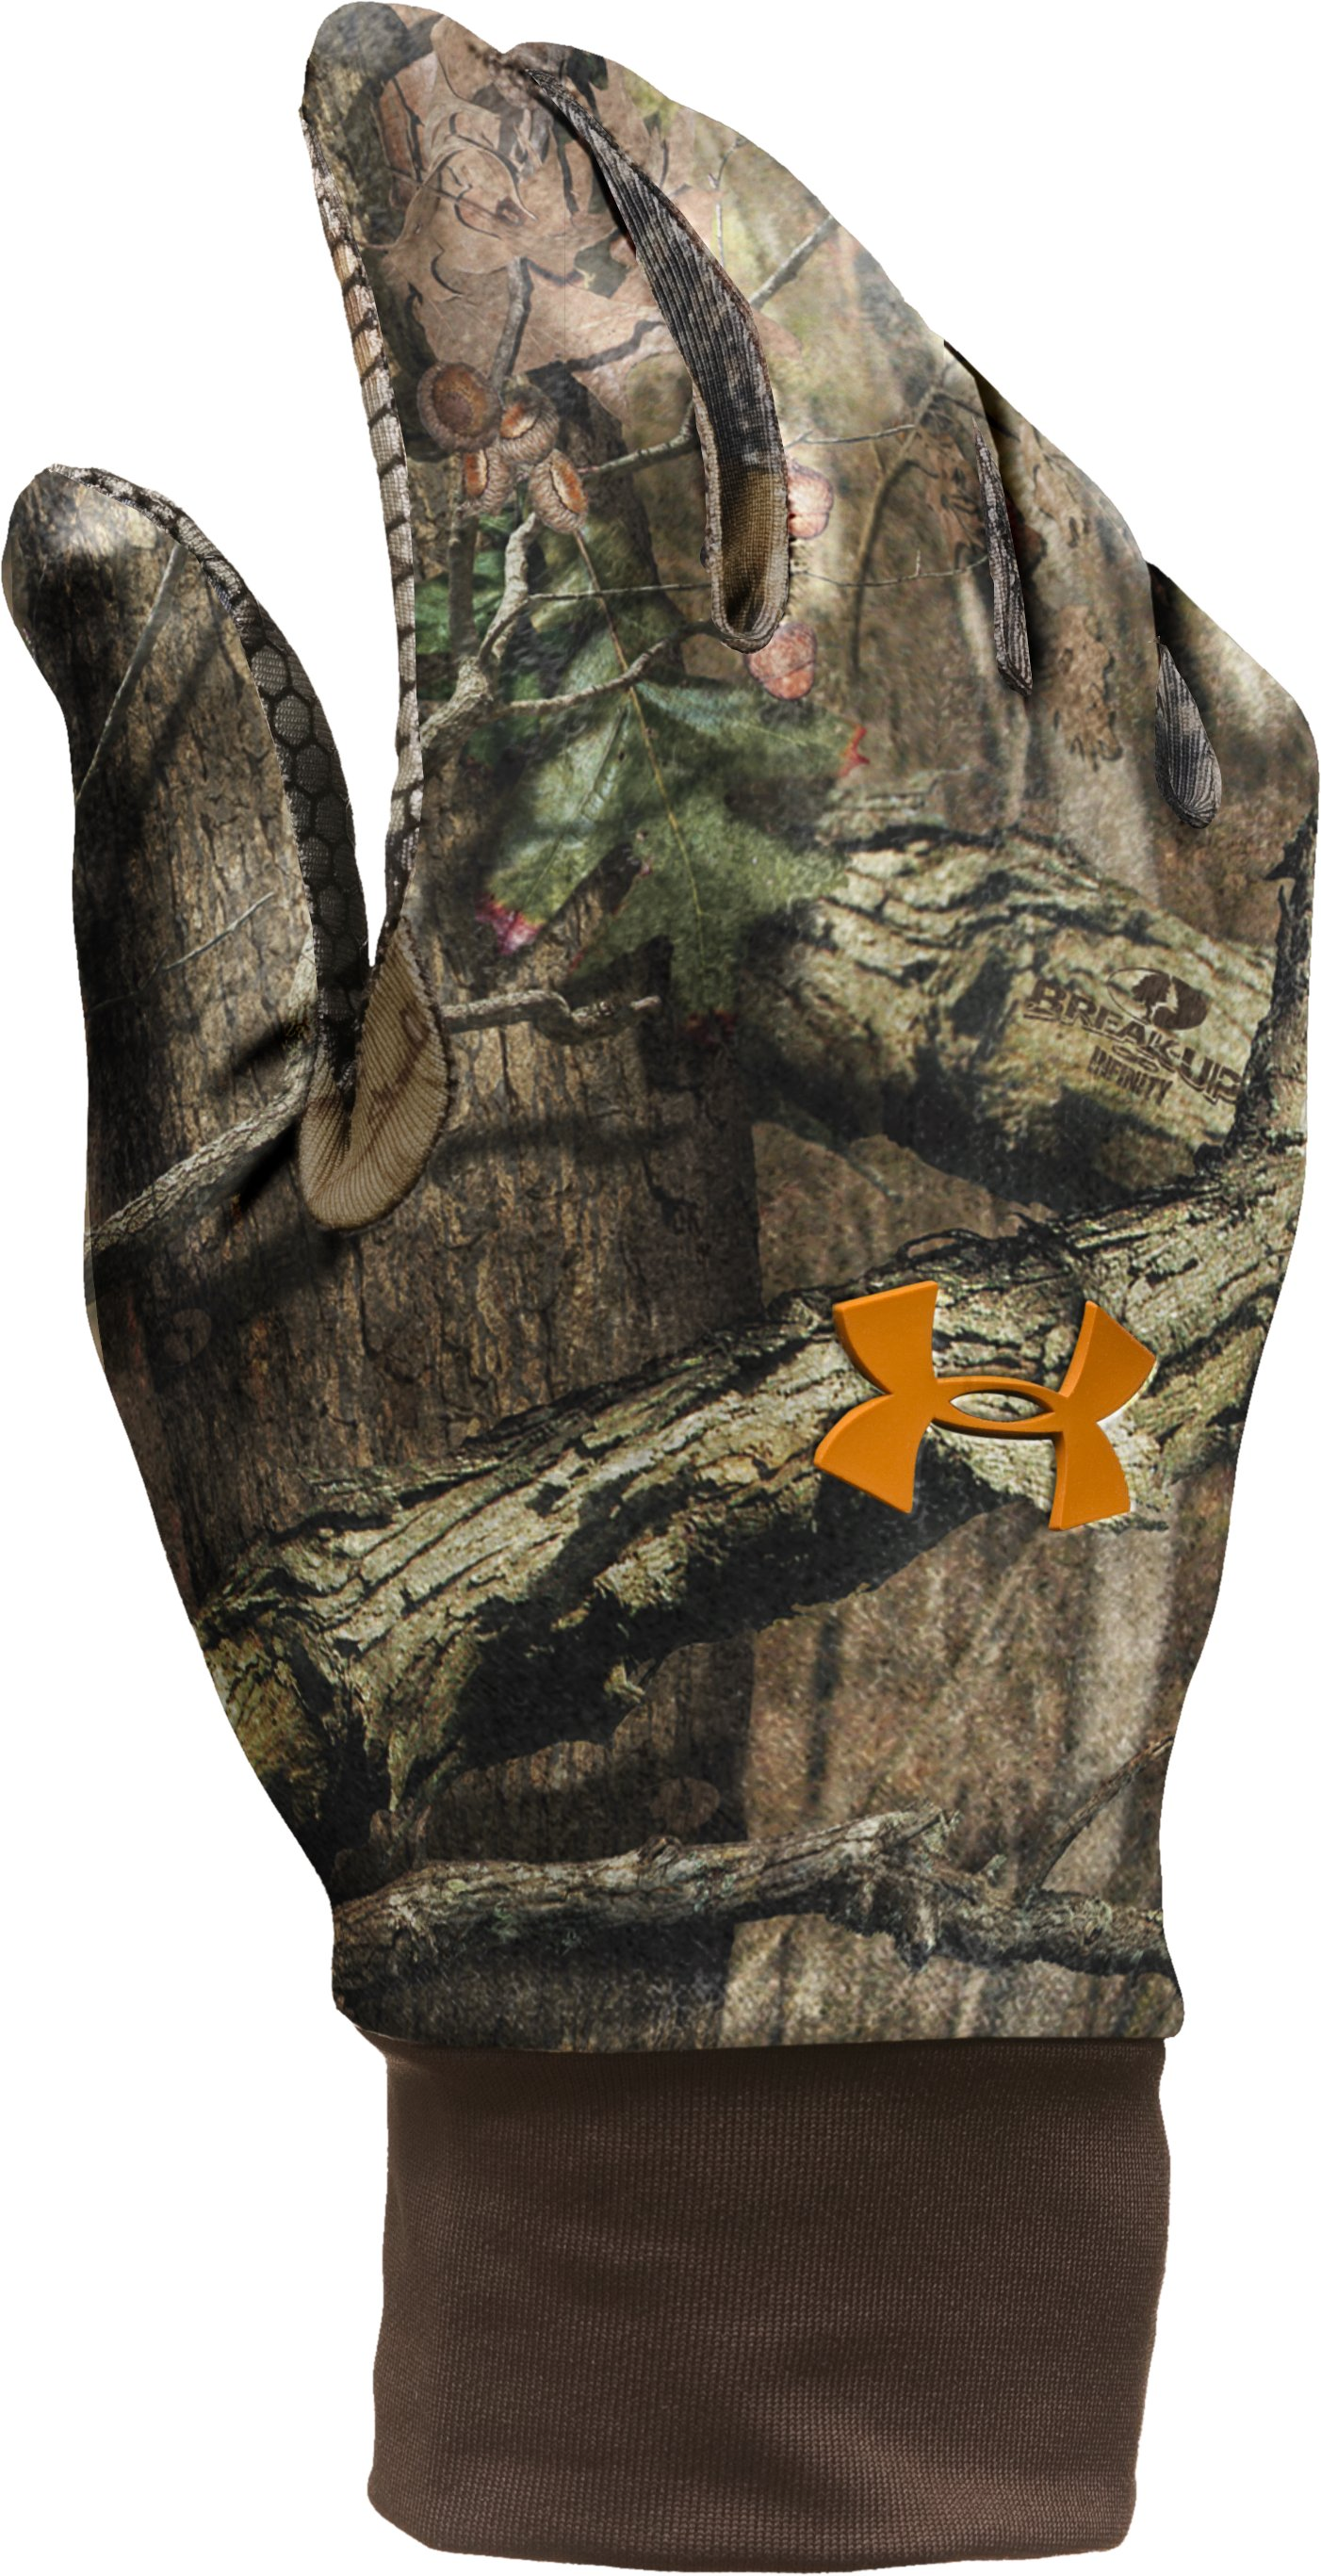 Men's Hurlock Camo Hunting Gloves, Mossy Oak Break-Up Infinity